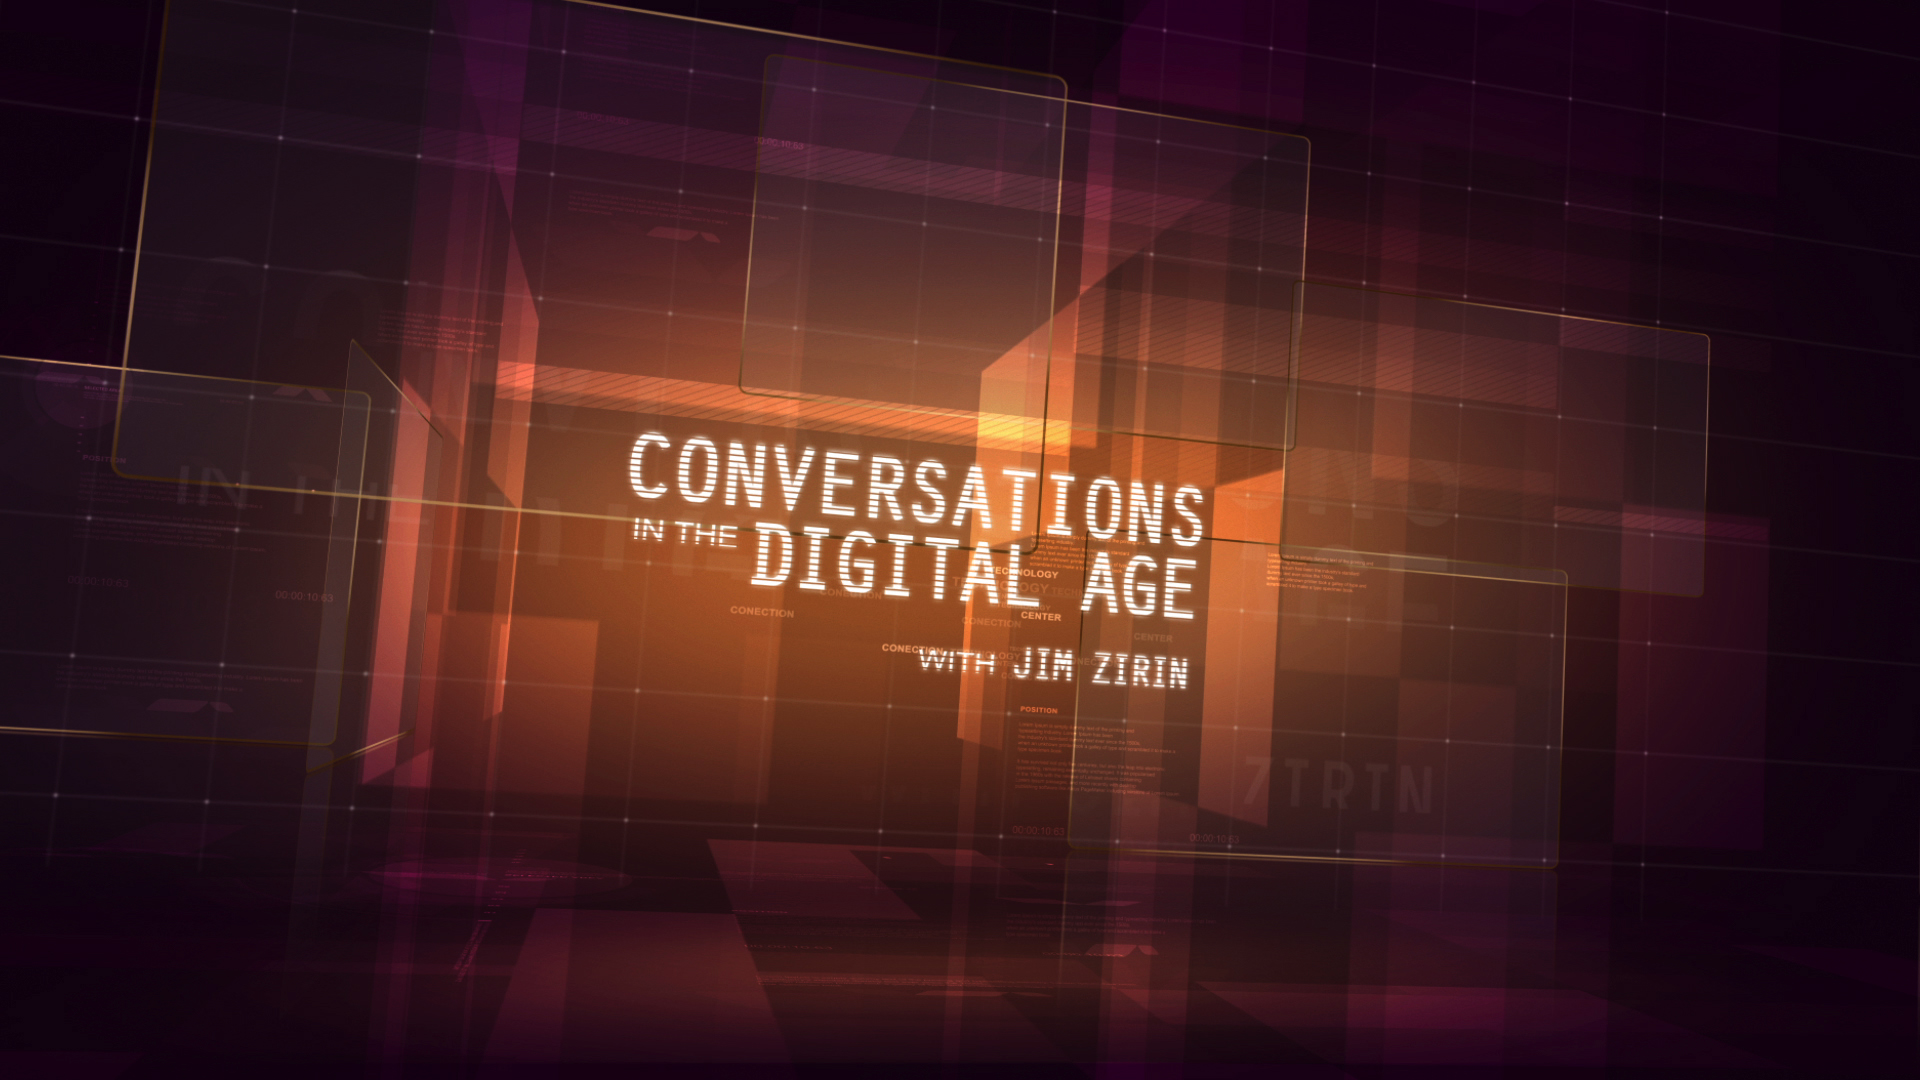 Conversations in the Digital Age